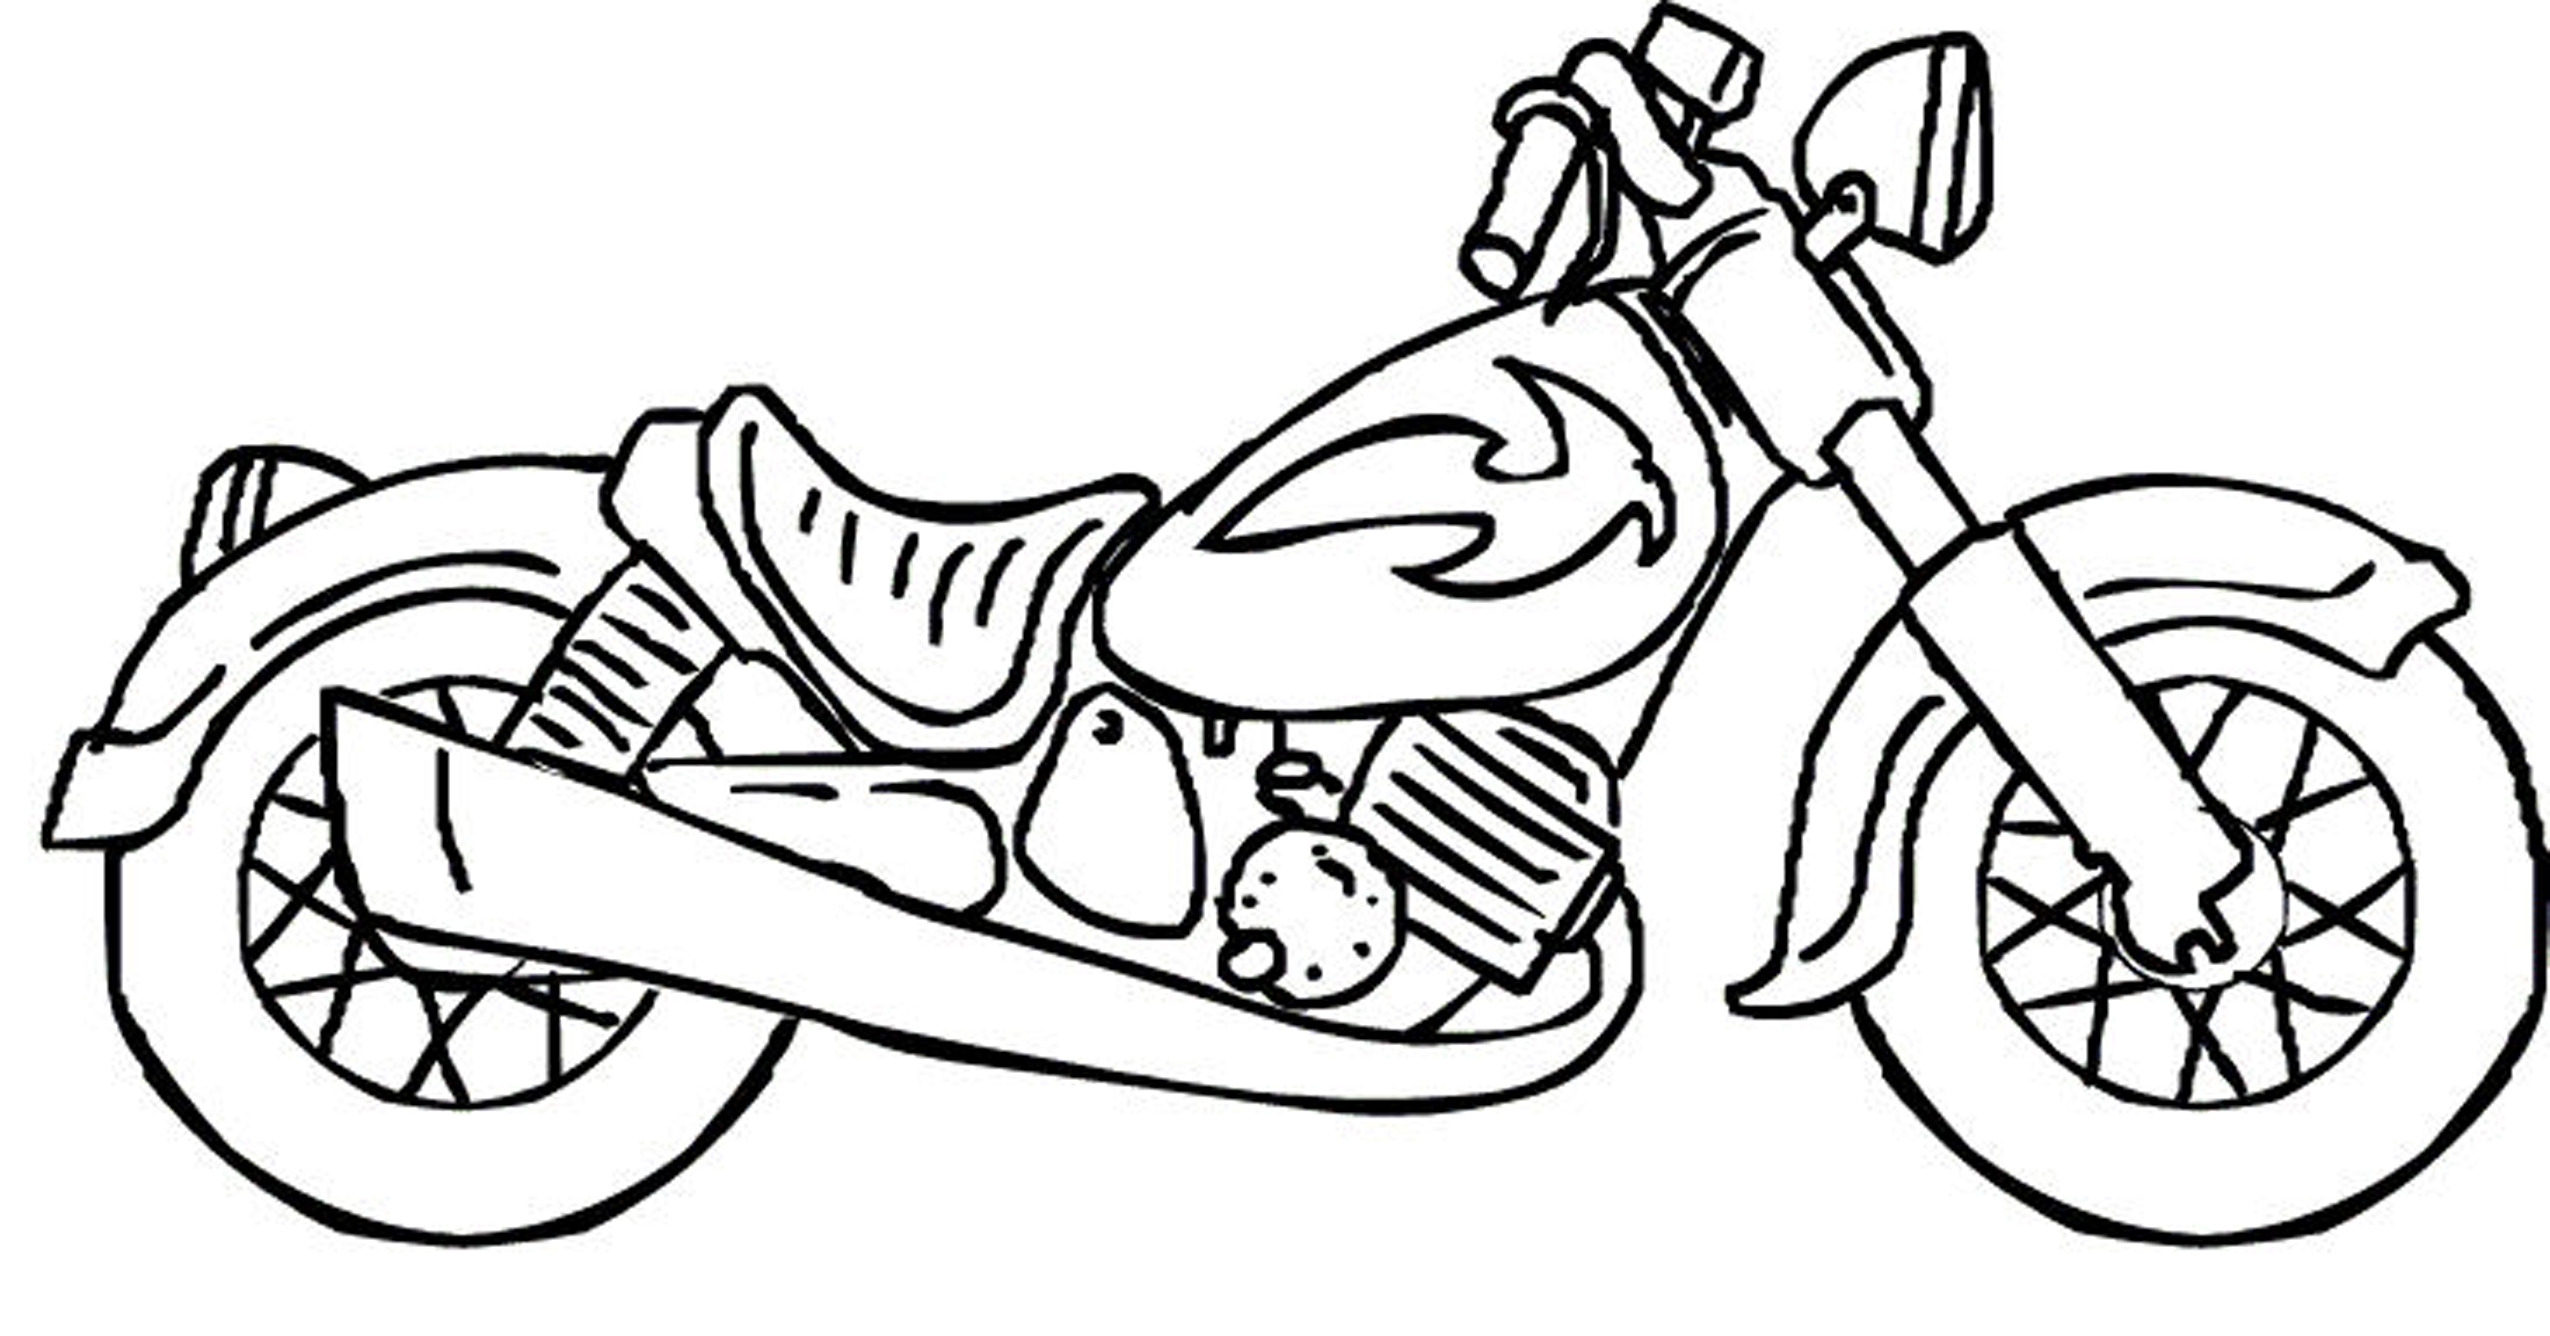 coloring pages for boys - happy coloring sheets for boys cool coloring design gallery ideas